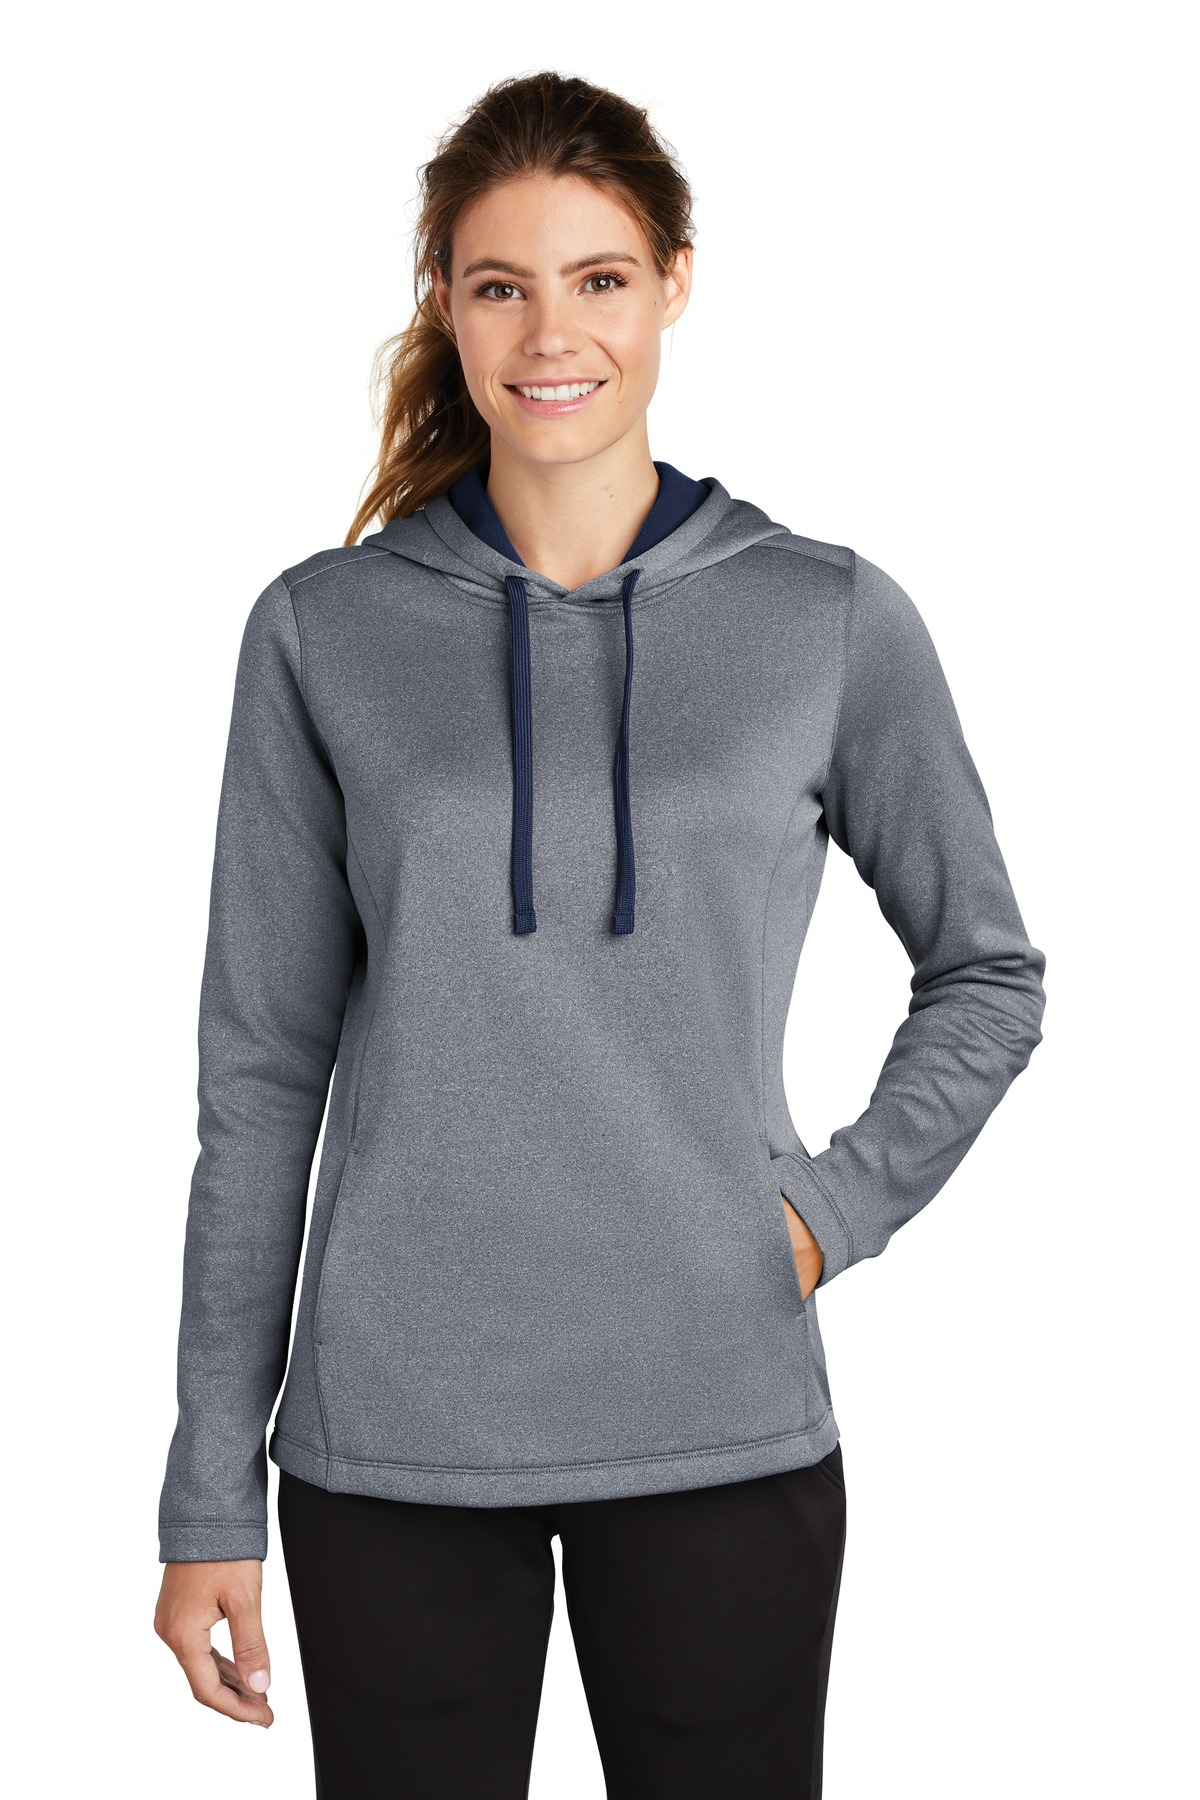 Sport-Tek  ®  Ladies PosiCharge  ®  Sport-Wick  ®  Heather Fleece Hooded Pullover. LST264 - True Navy Heather